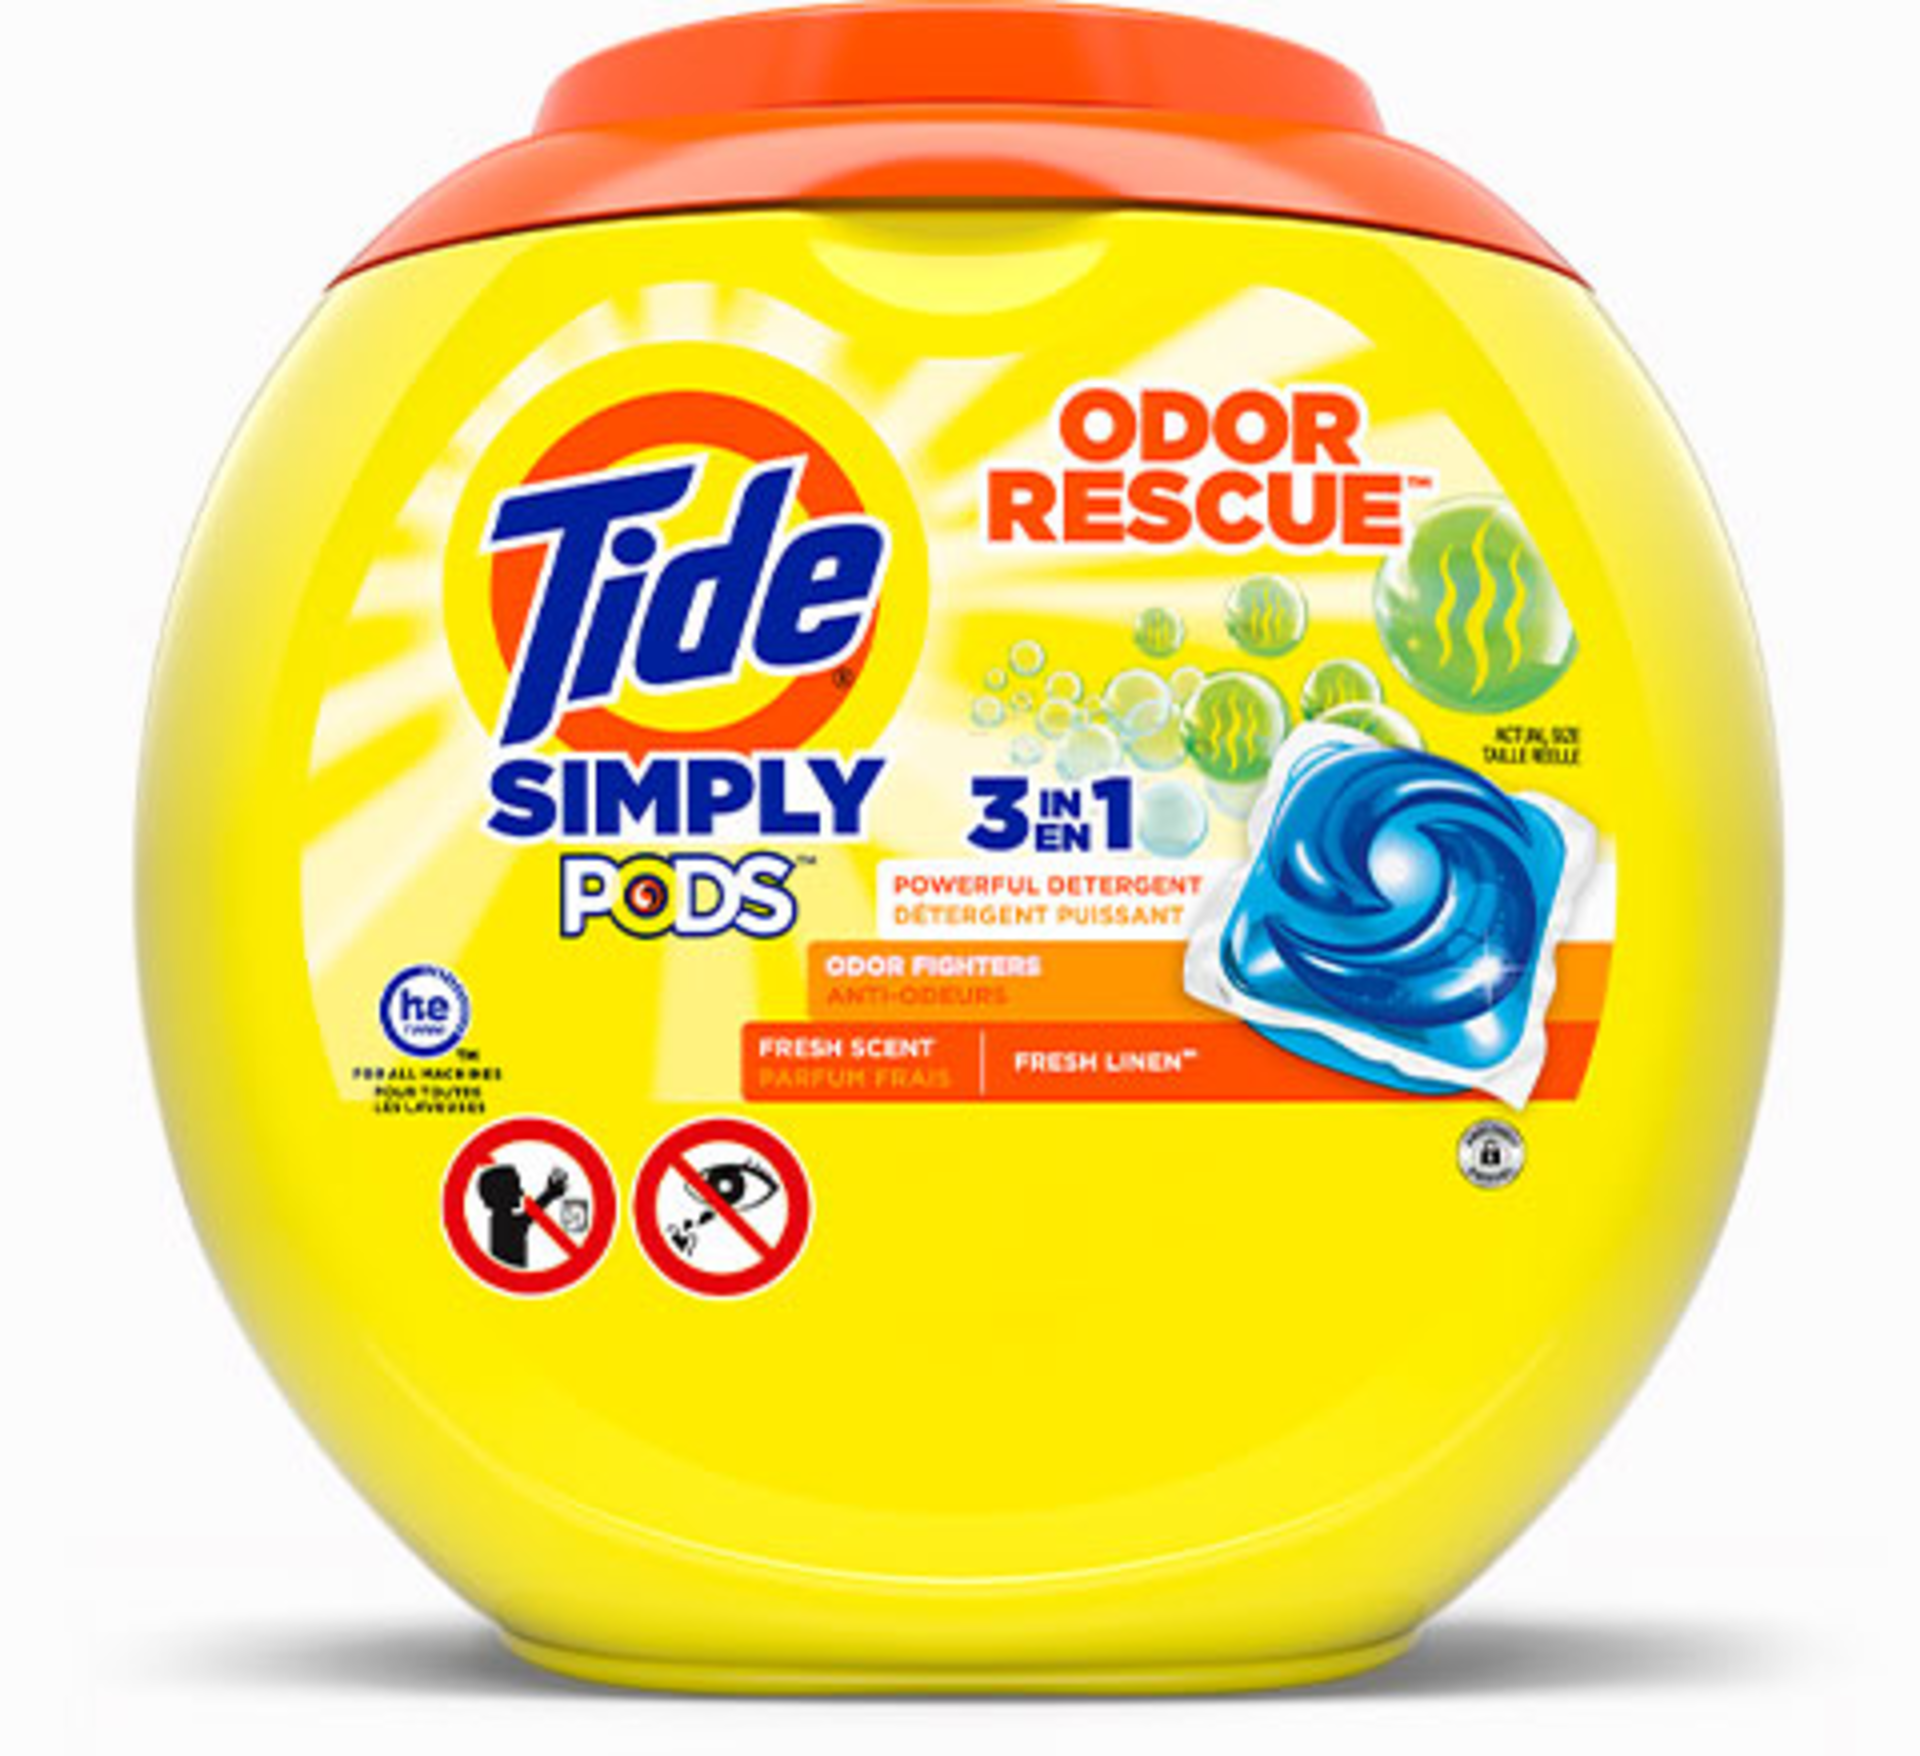 Tide Simply PODS® Odor Rescue Liquid Laundry Detergent Pacs